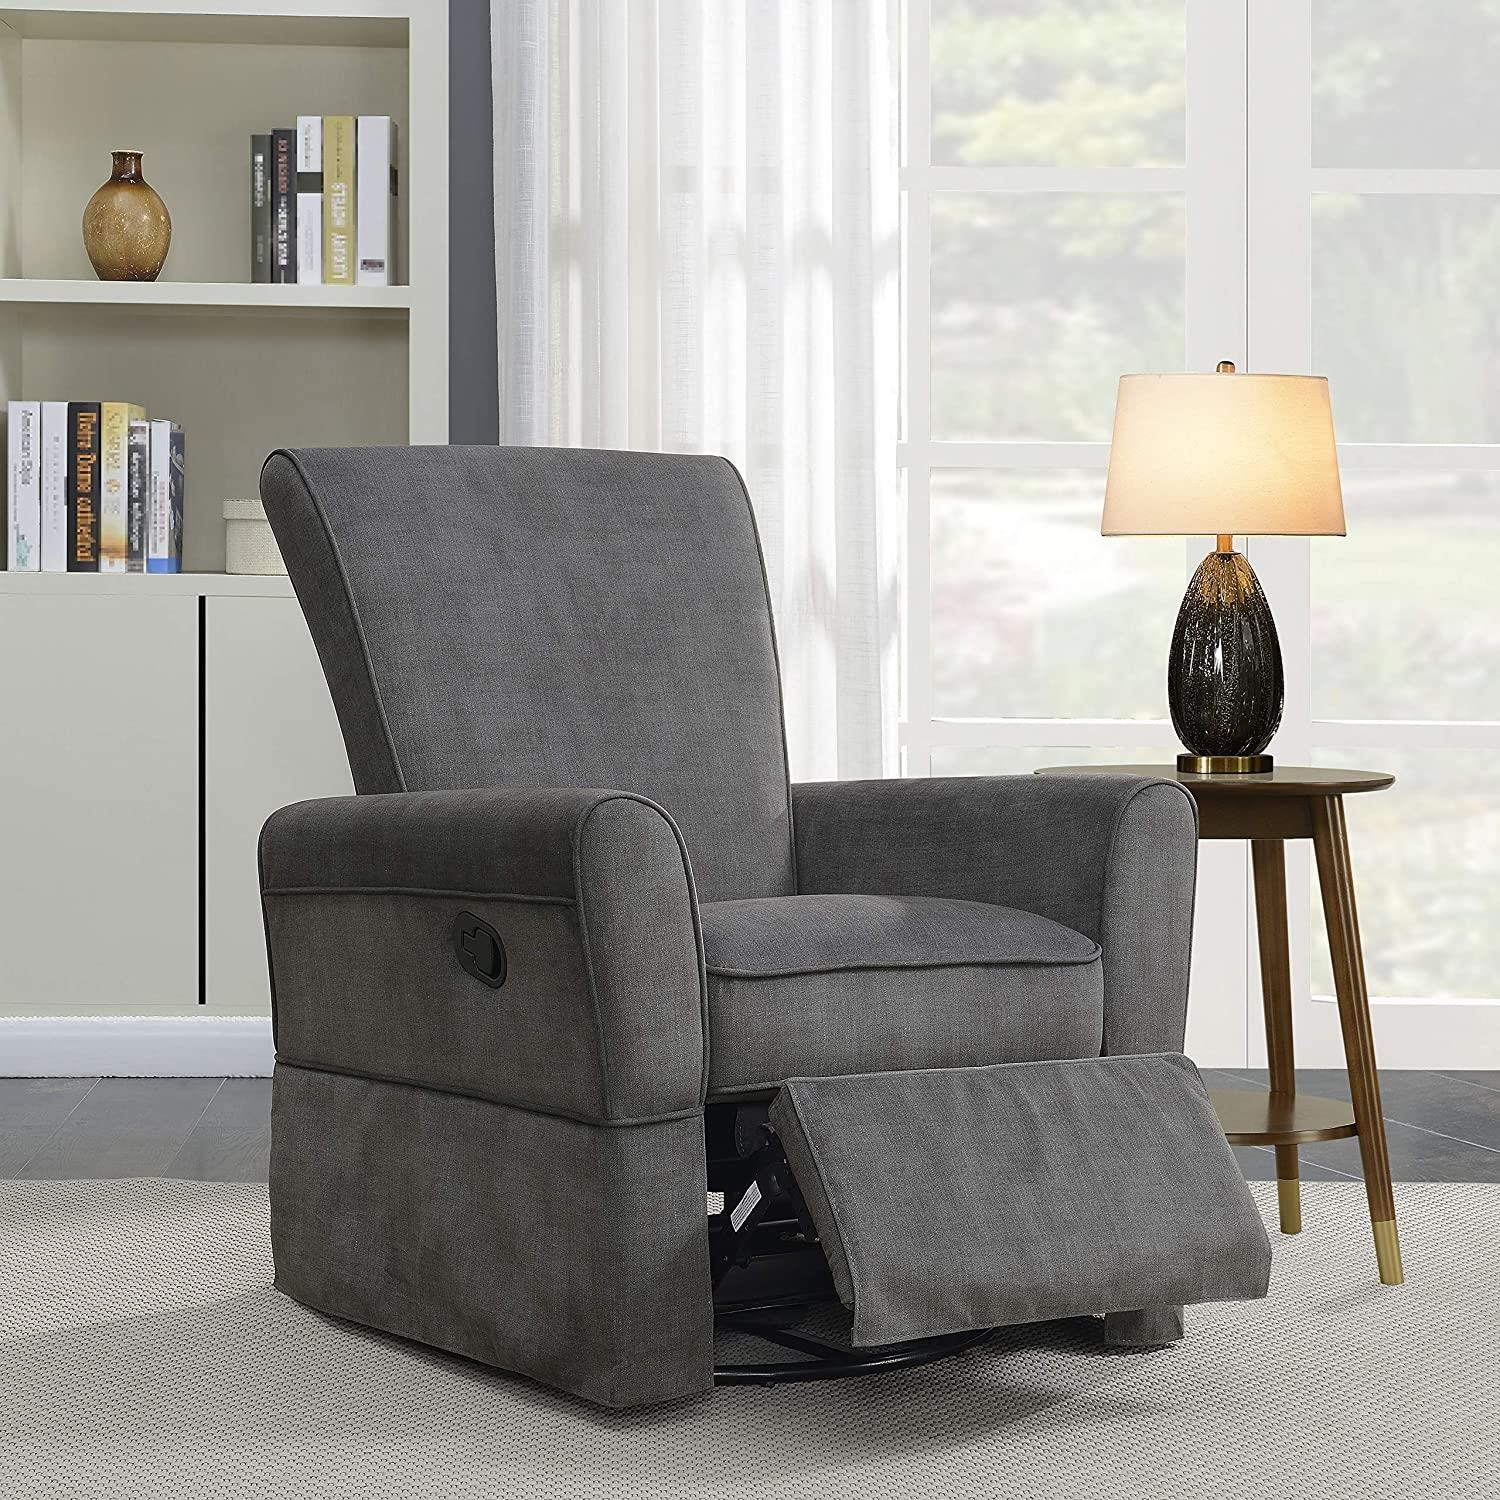 Bicknell Bicknell Swivel Glider Recliner by Prime Resources International at Morris Home